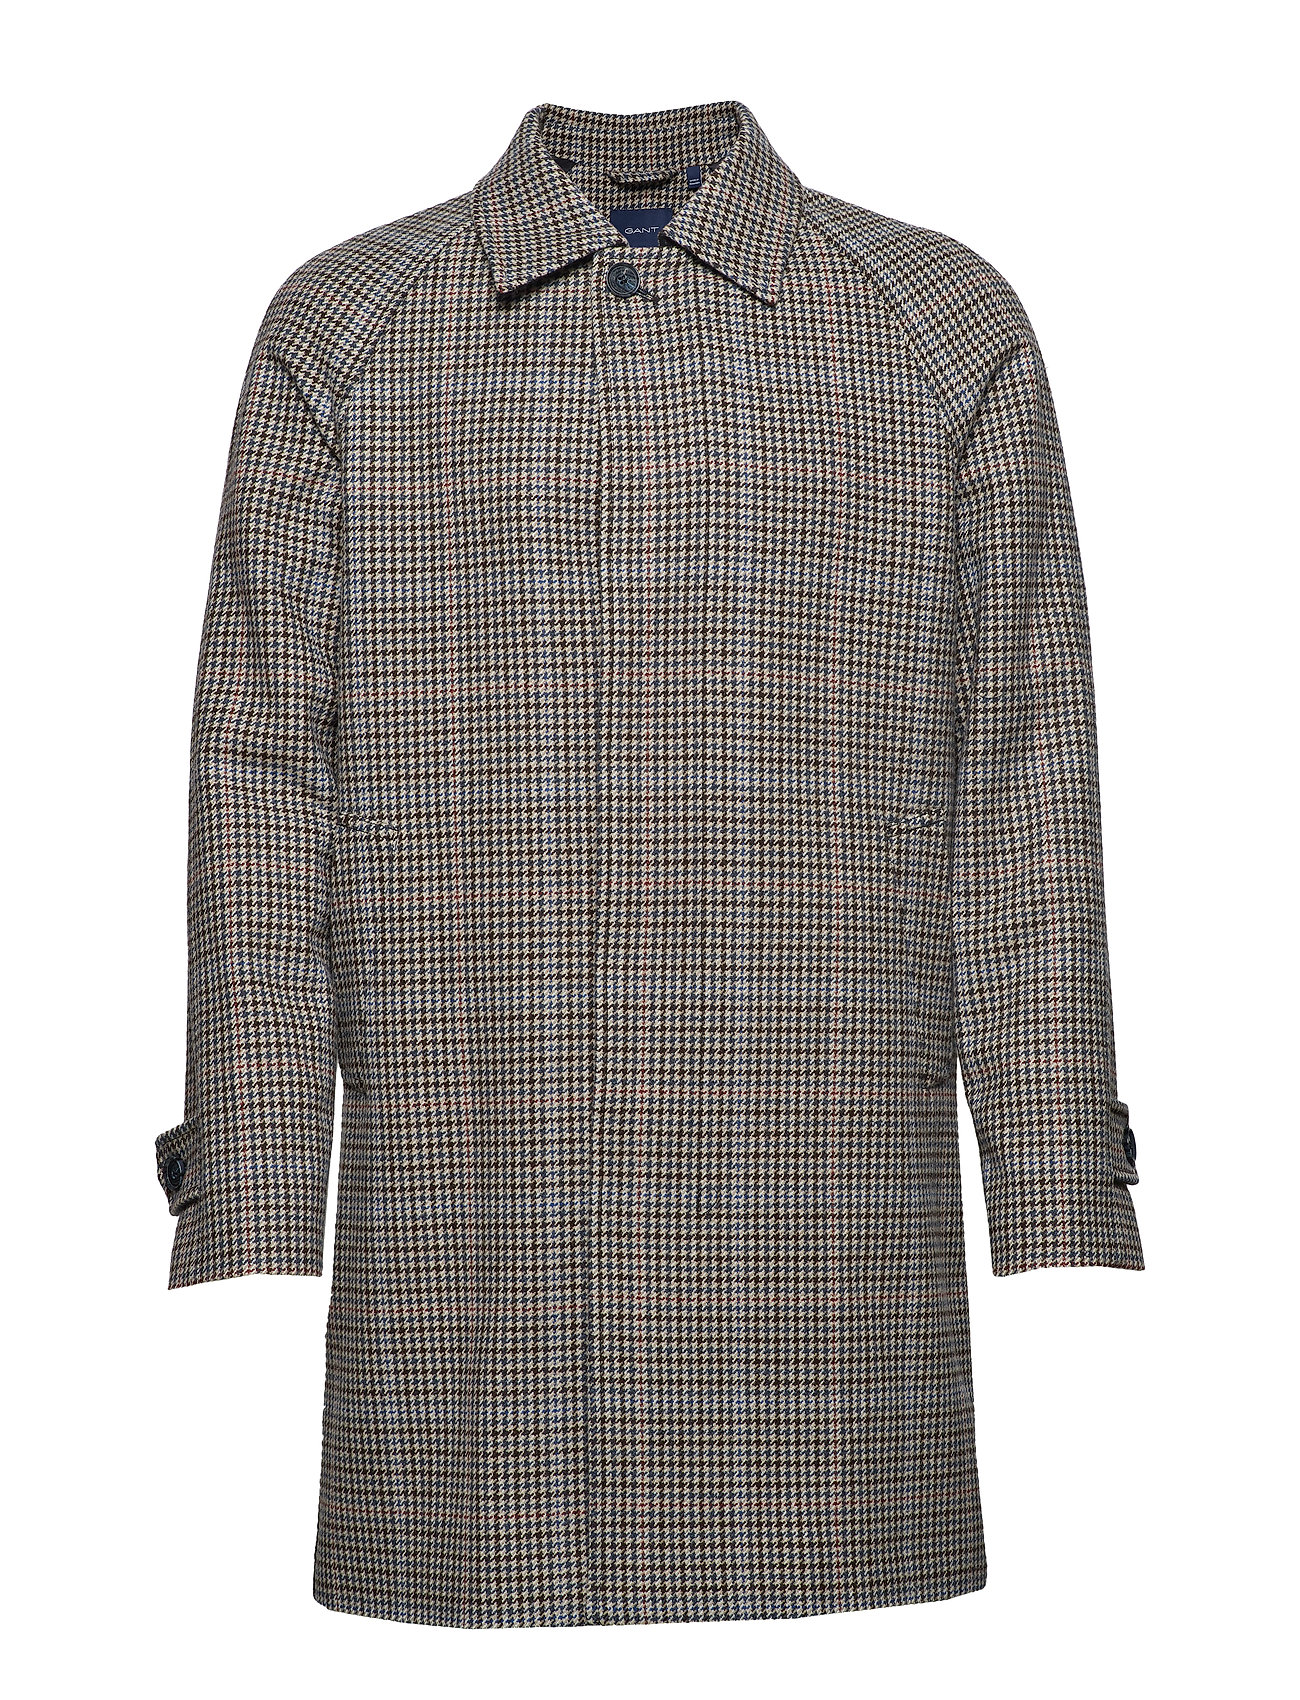 GANT D1. THE HIGHLAND COAT - EGGSHELL